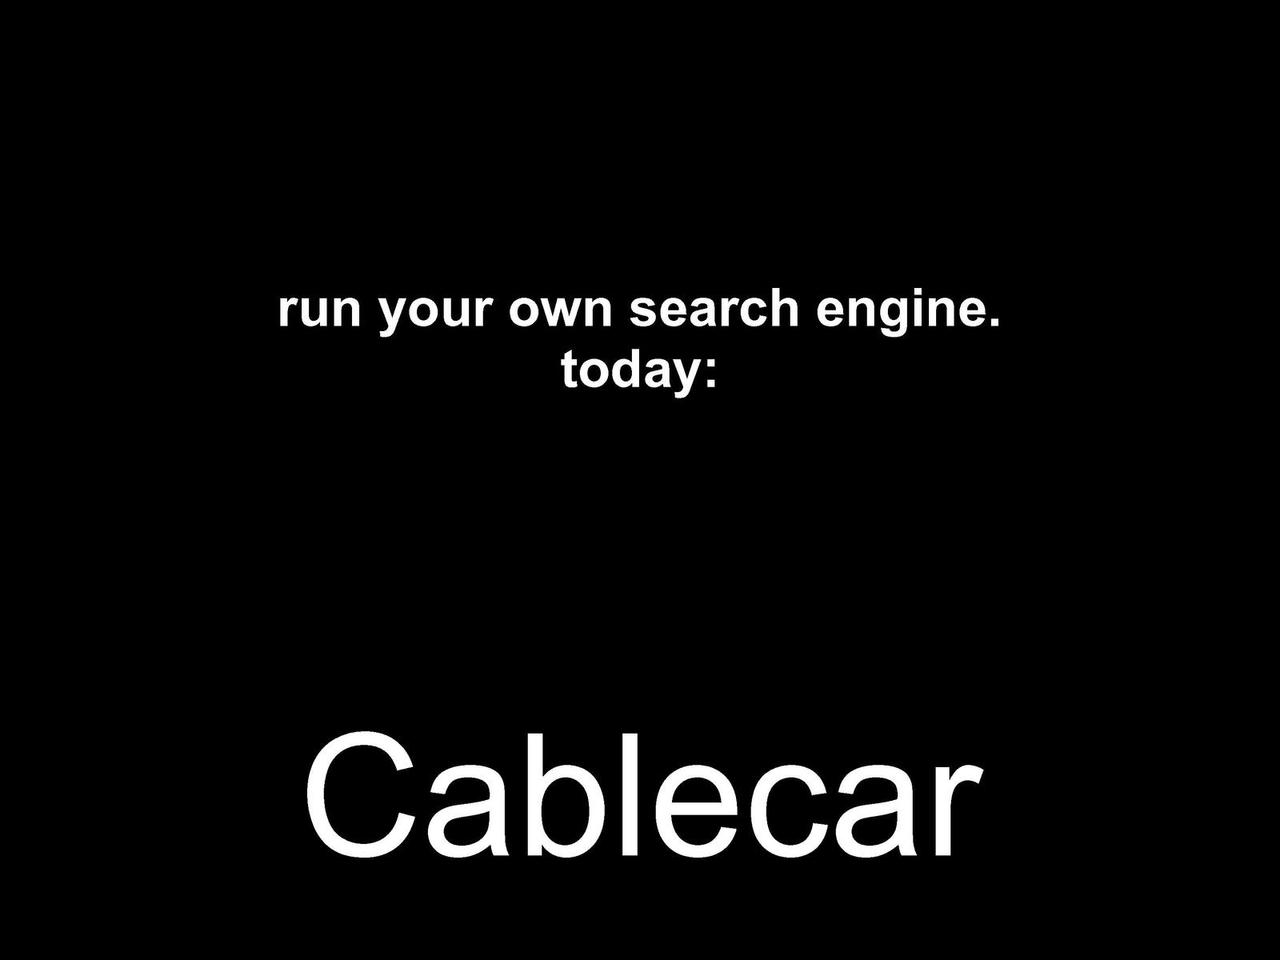 Cablecar - Run your own search engine. Today.